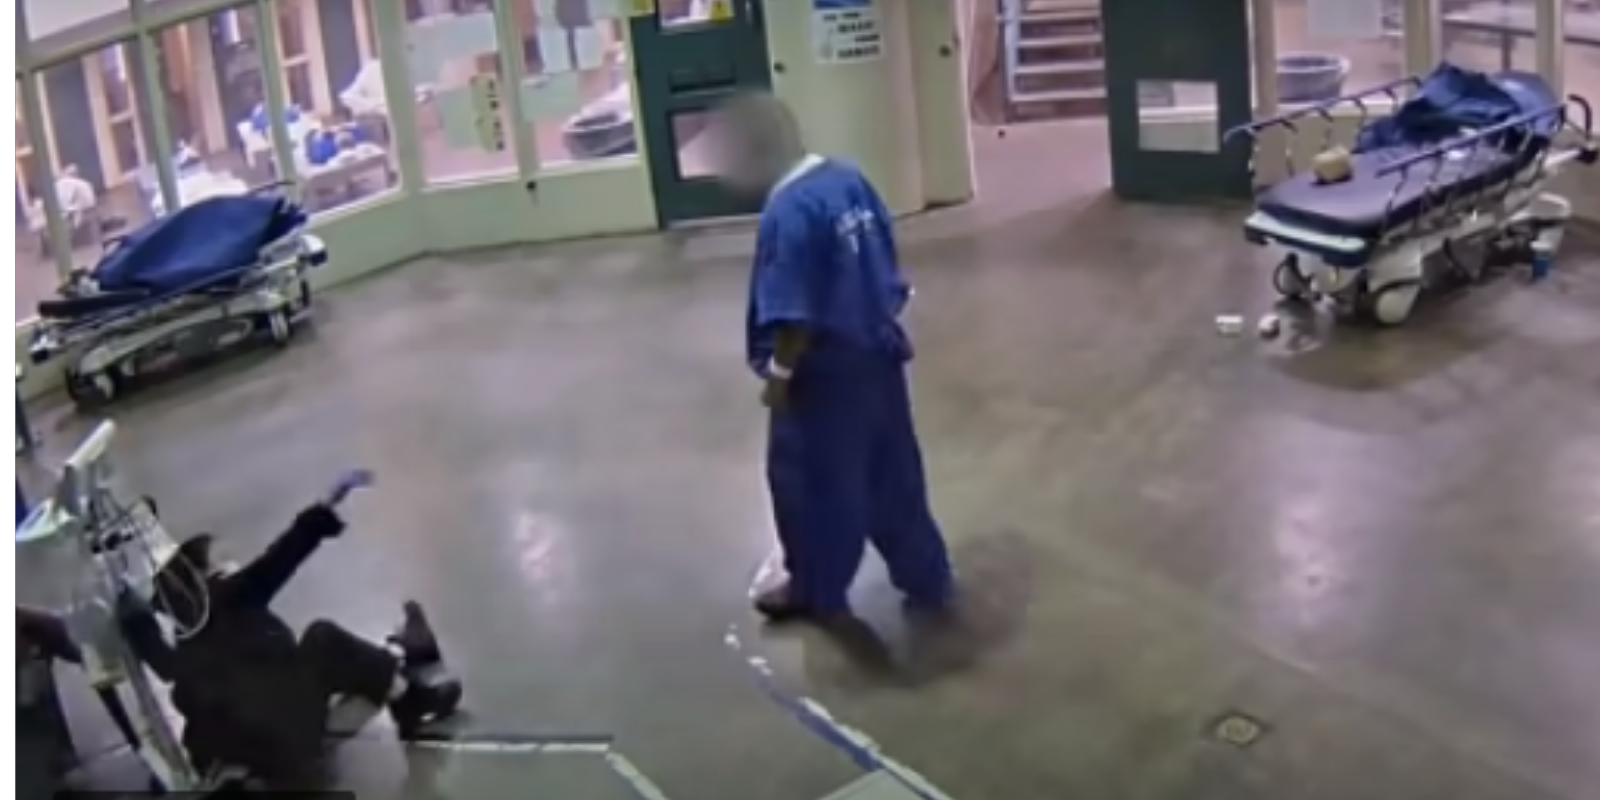 WATCH: SHOCKING video shows brutal assault on female officer in LA county jail